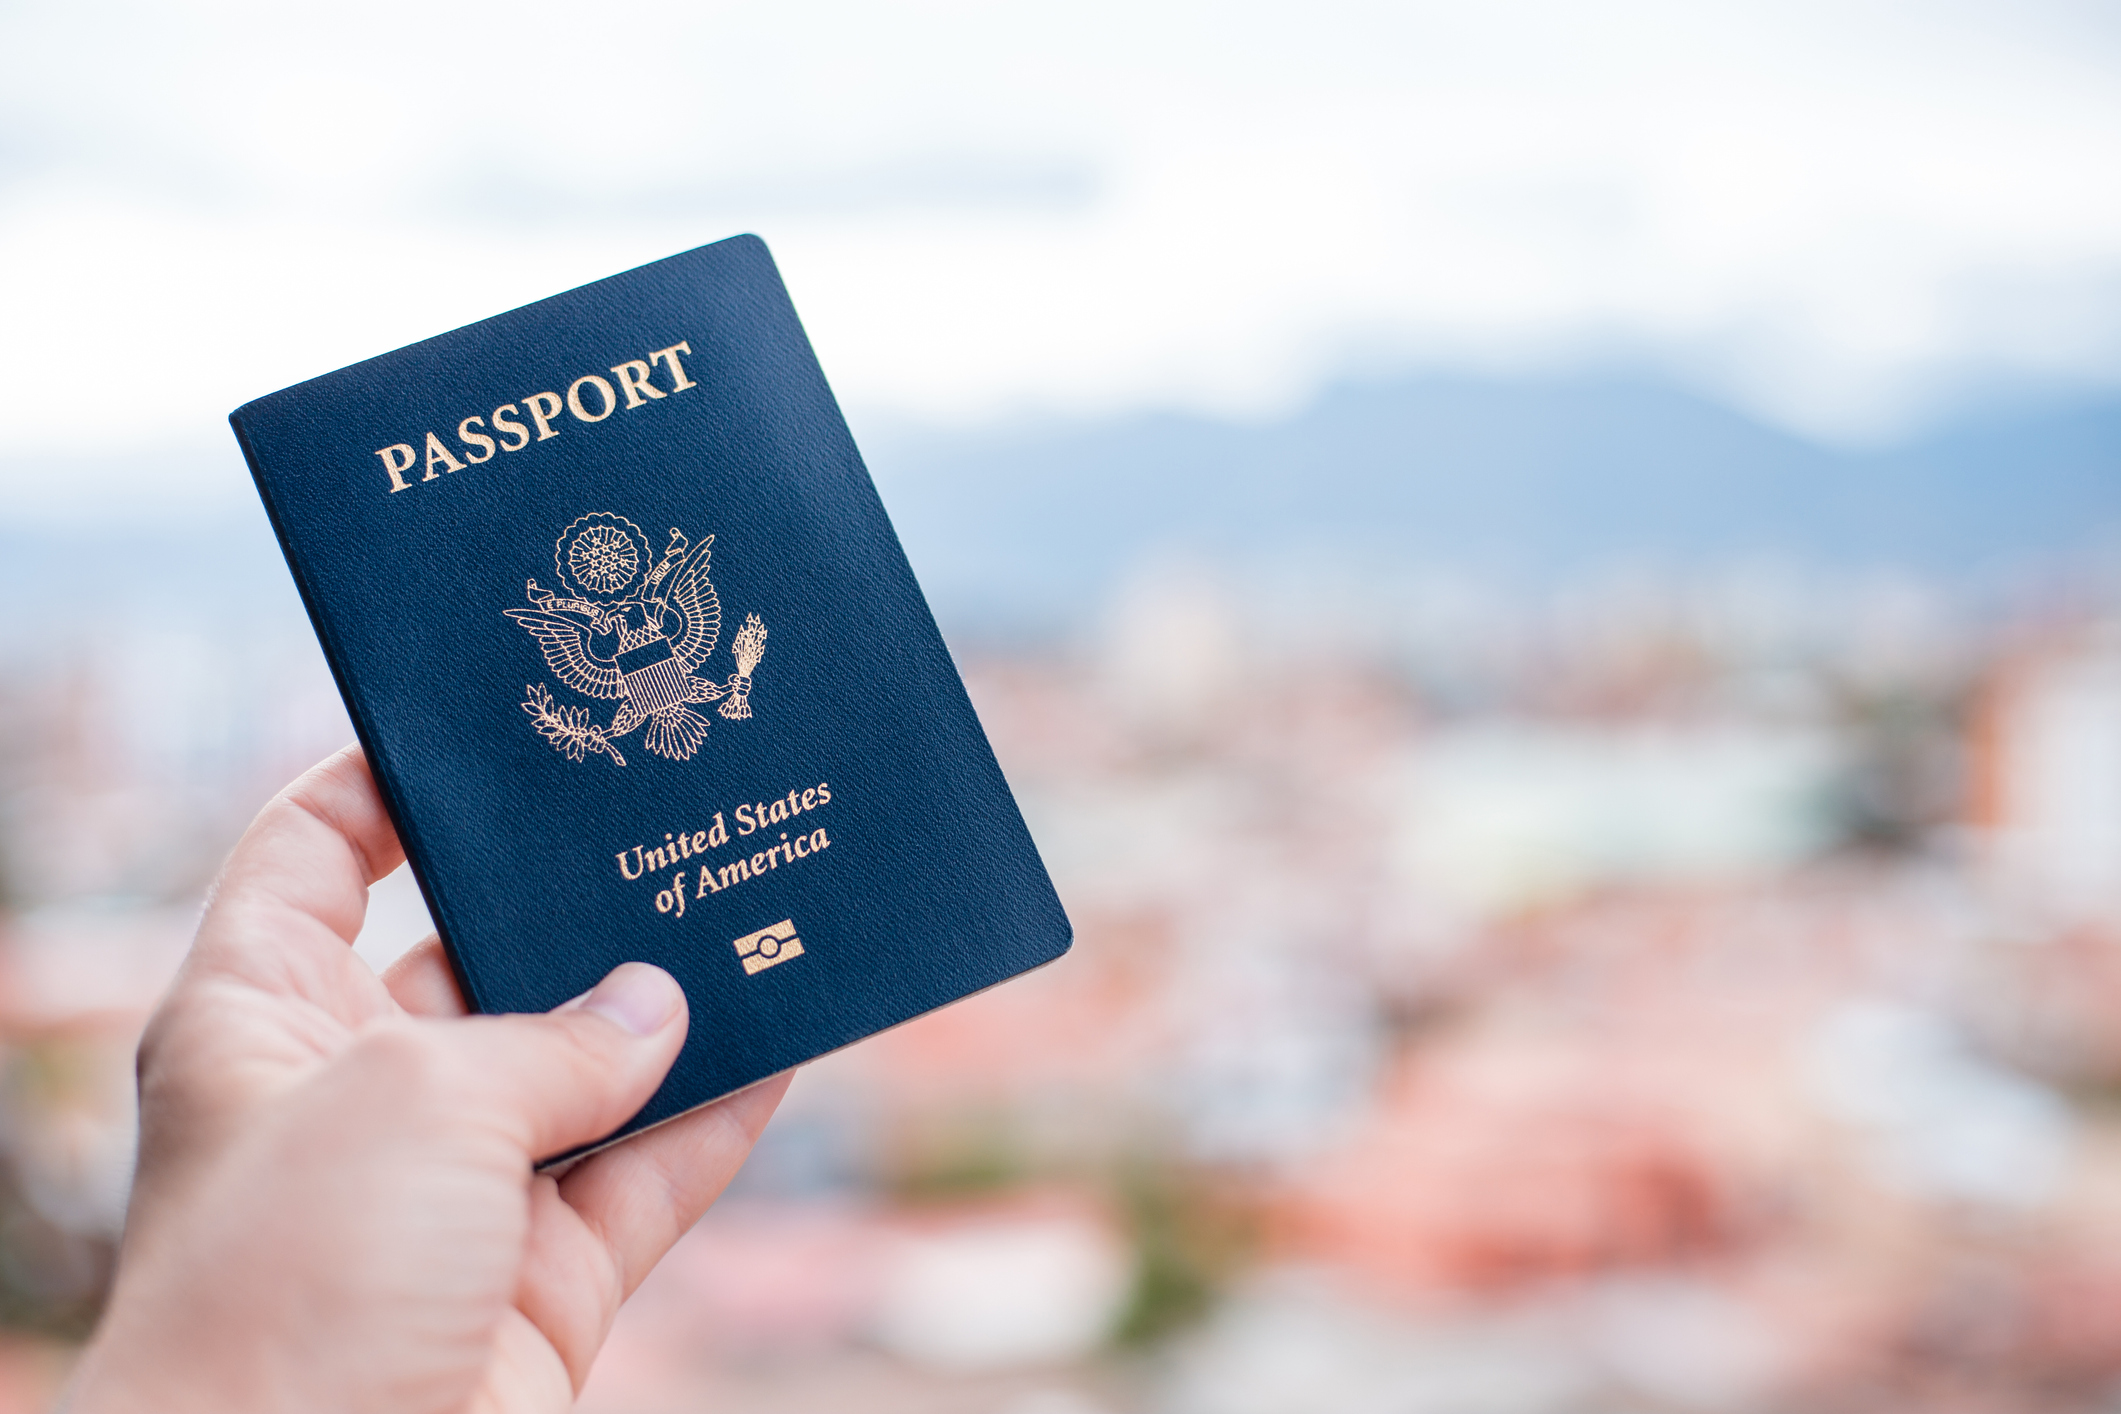 Tarrant County Warns Residents about Possible Passport Scam